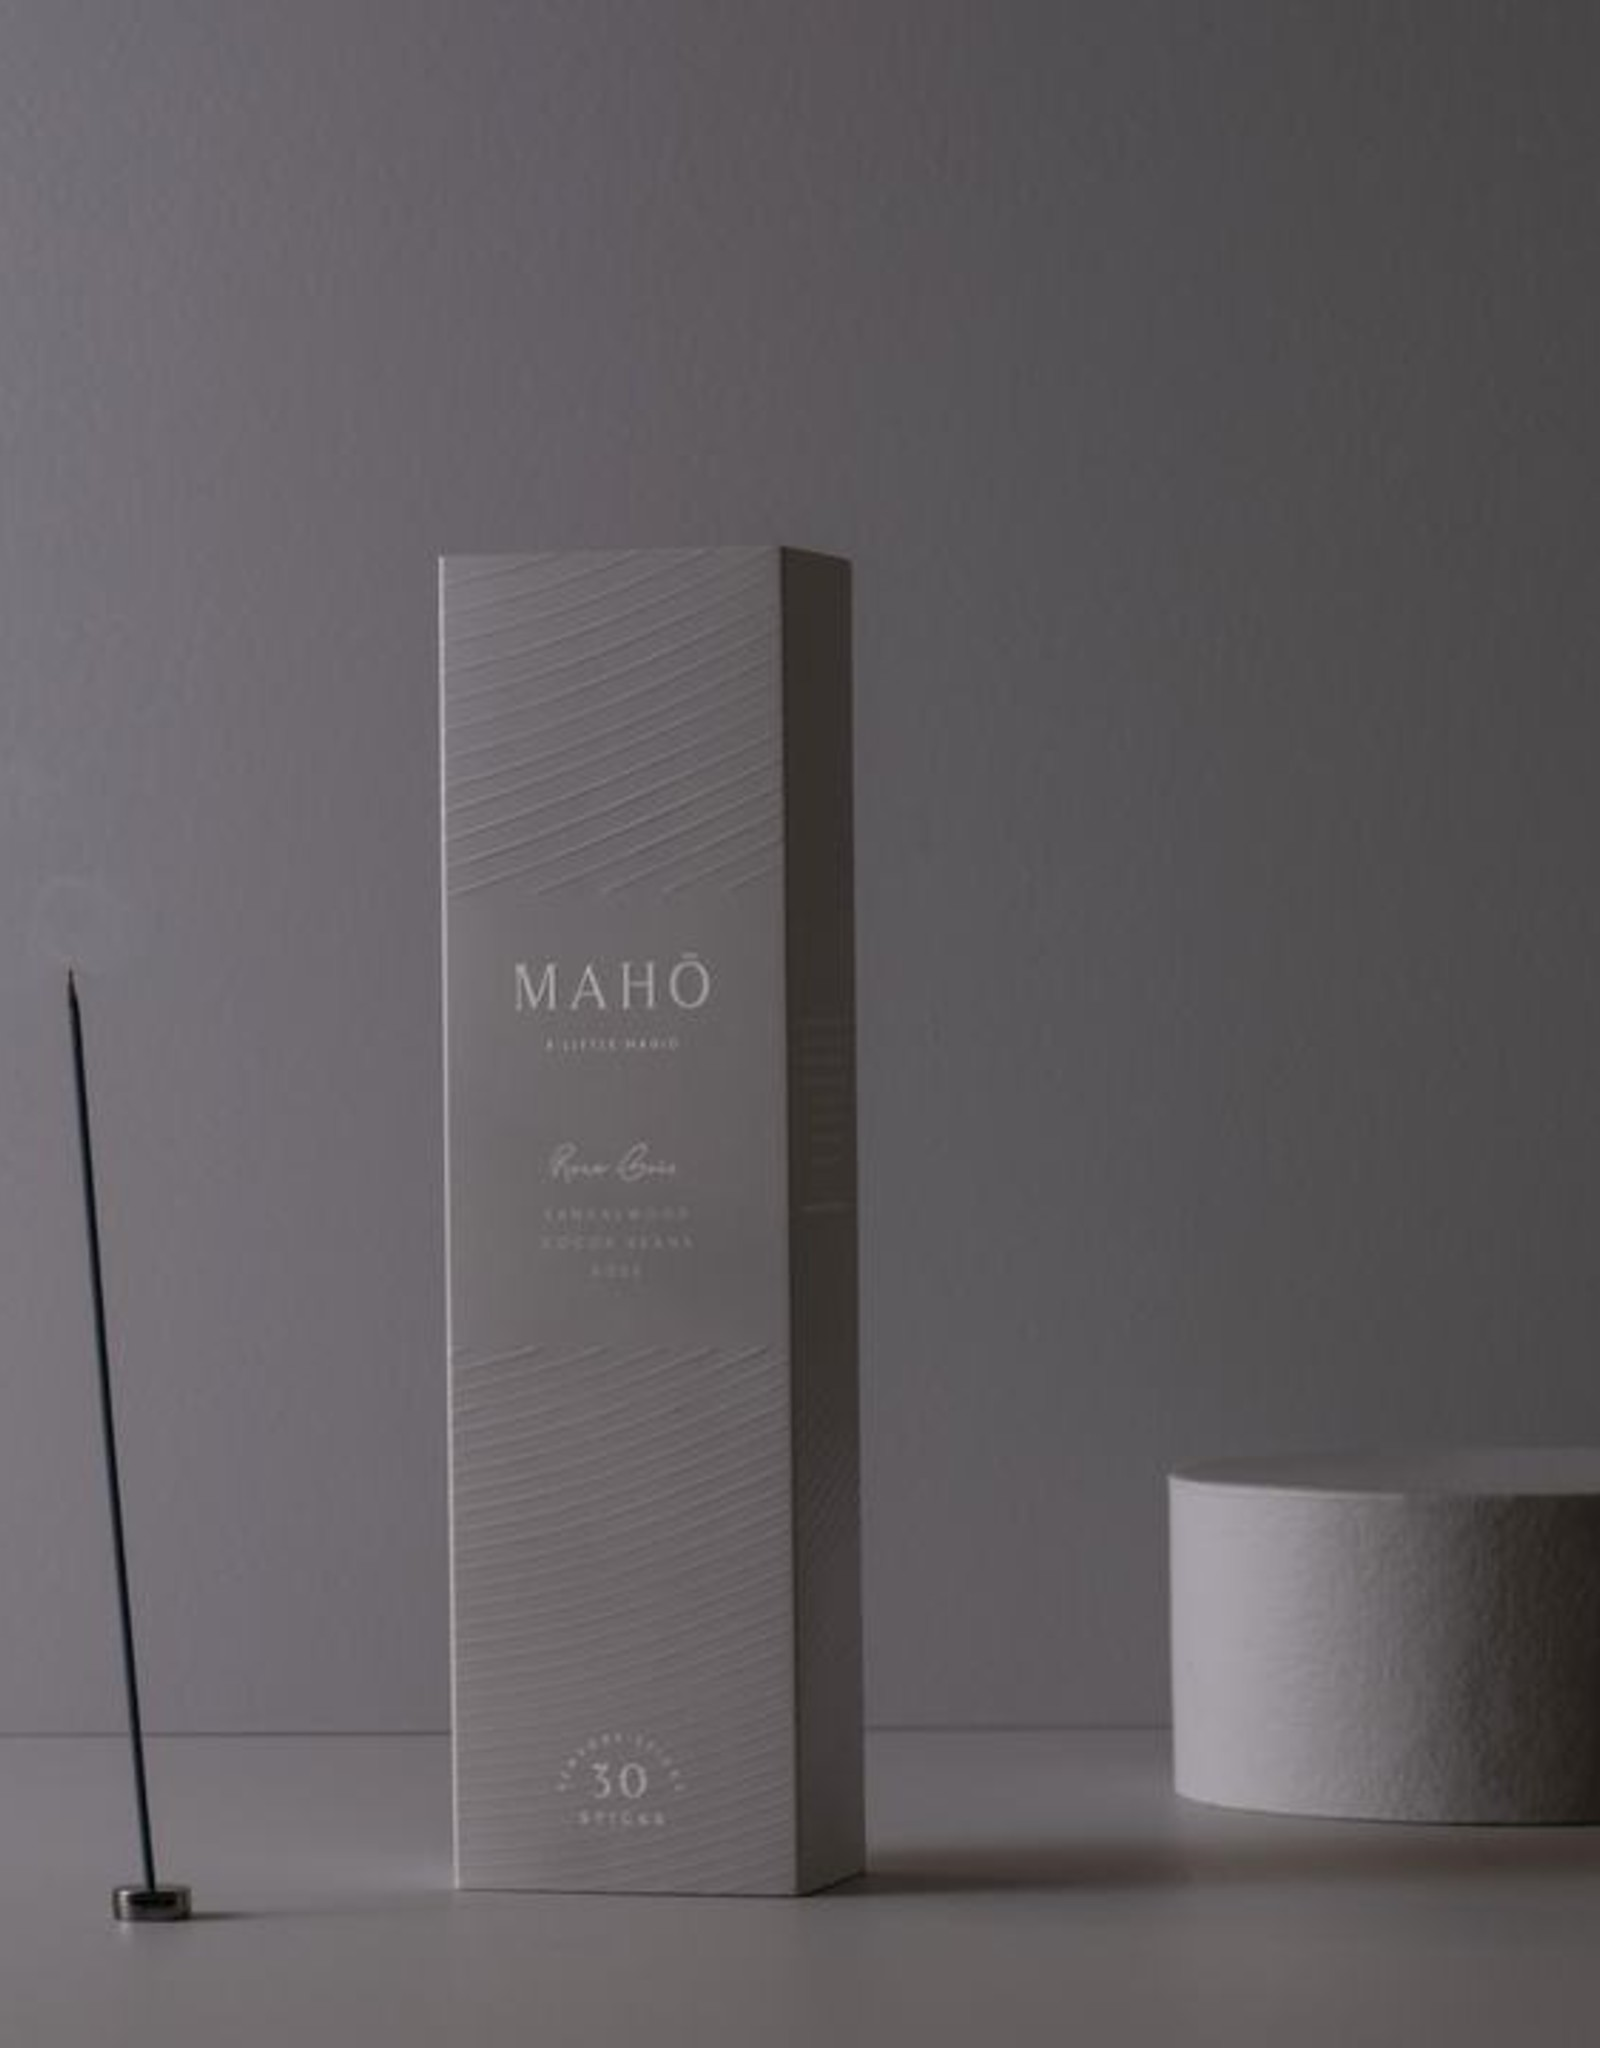 Maho ROSE BOIS - Sensory Sticks